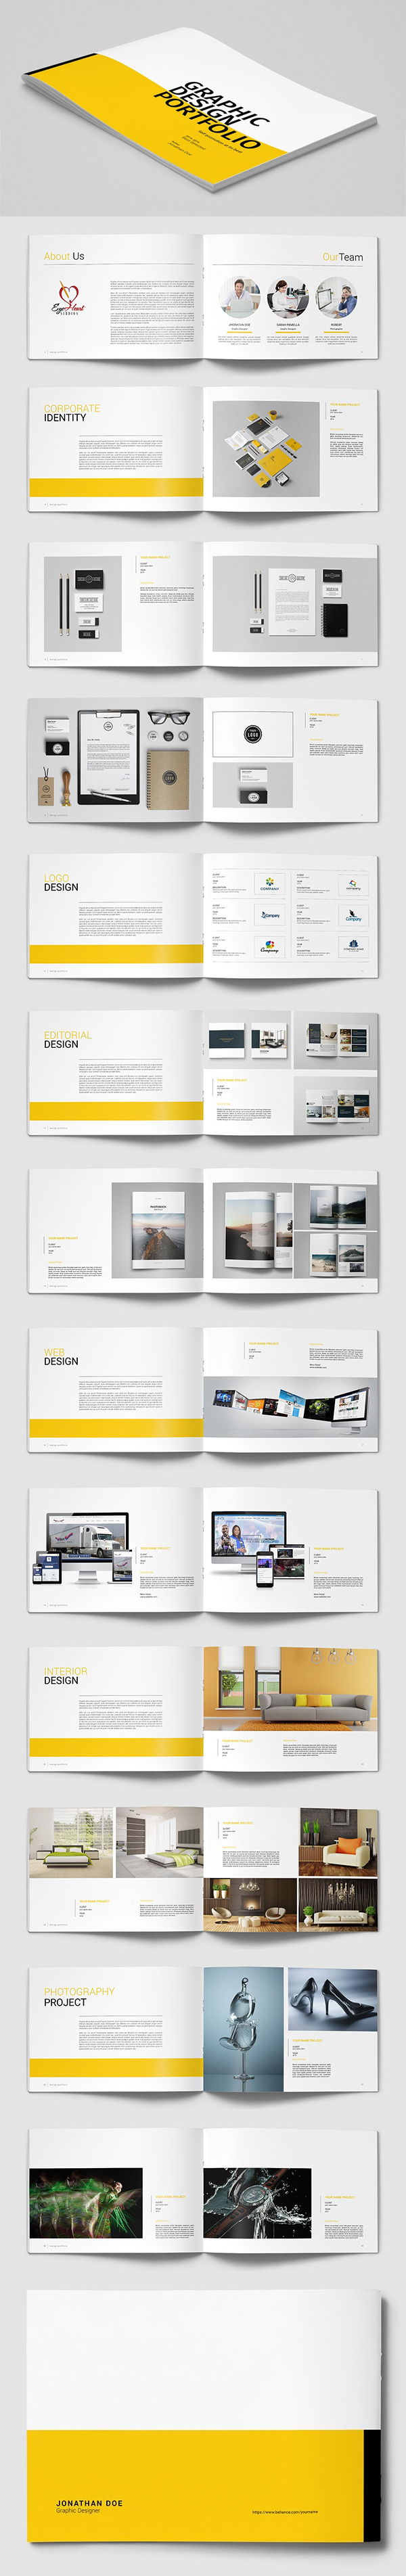 100 Professional Corporate Brochure Templates - 61